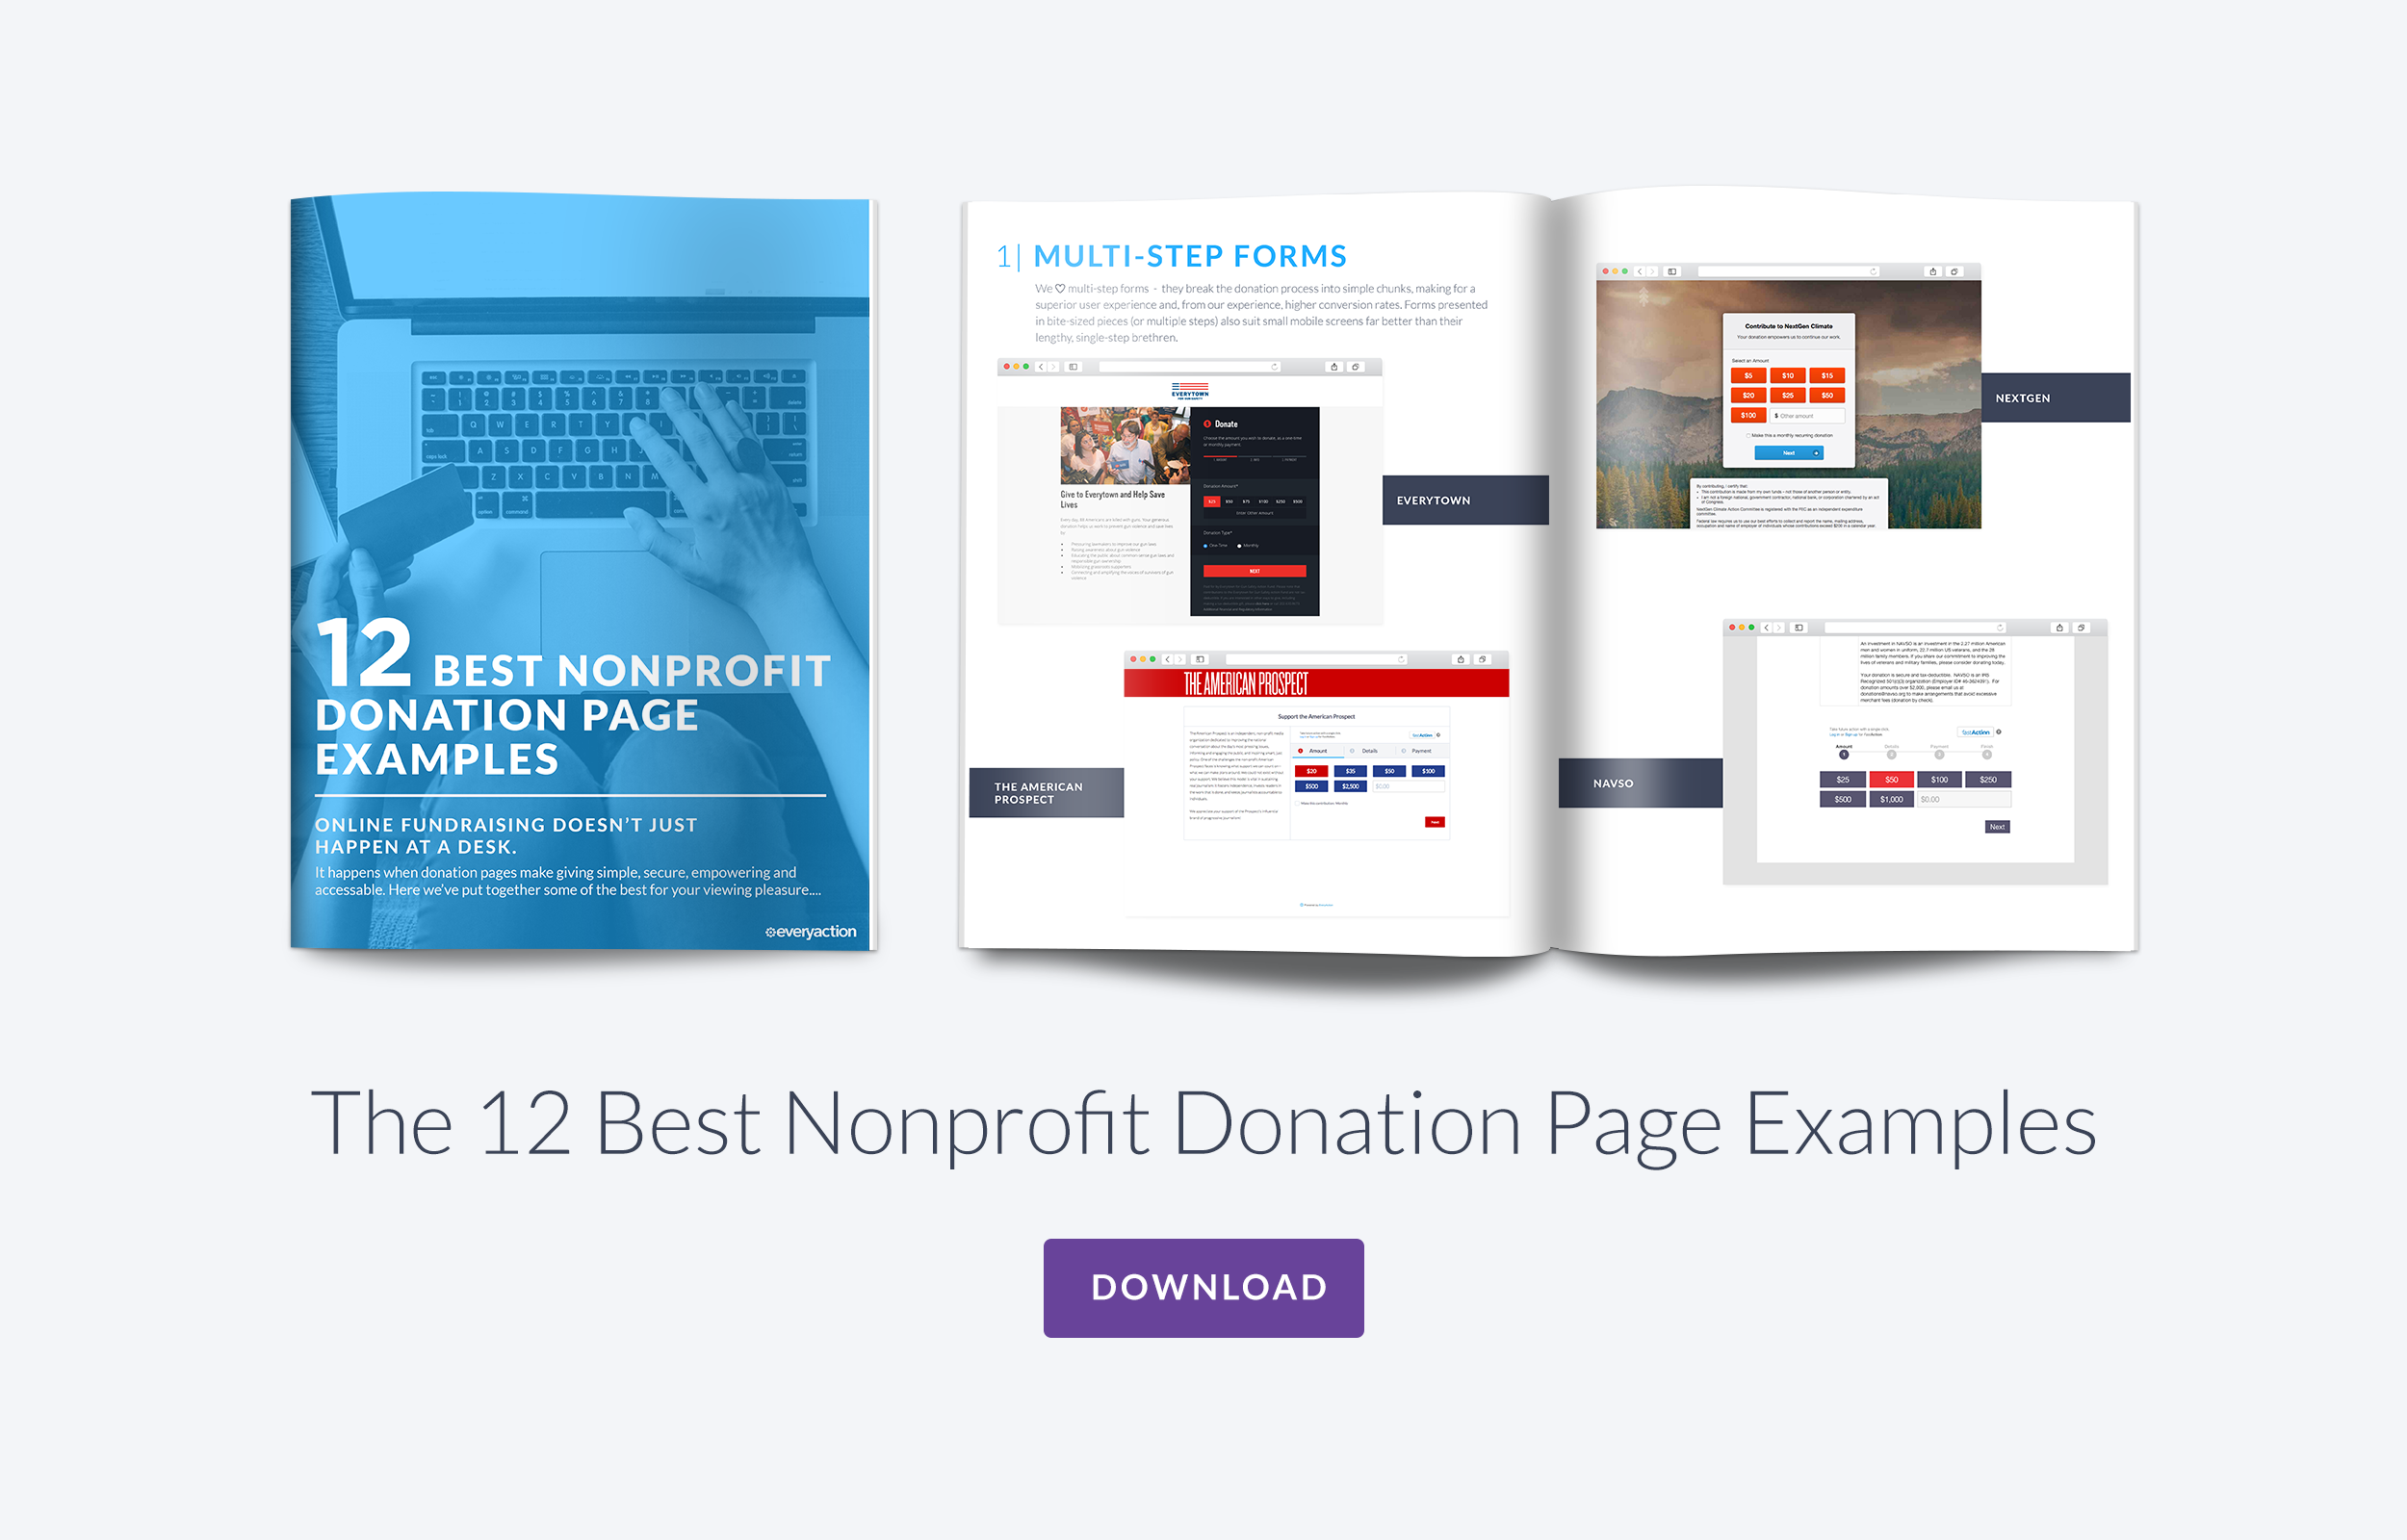 12 Nonprofit Donation Pages That Don't Suck